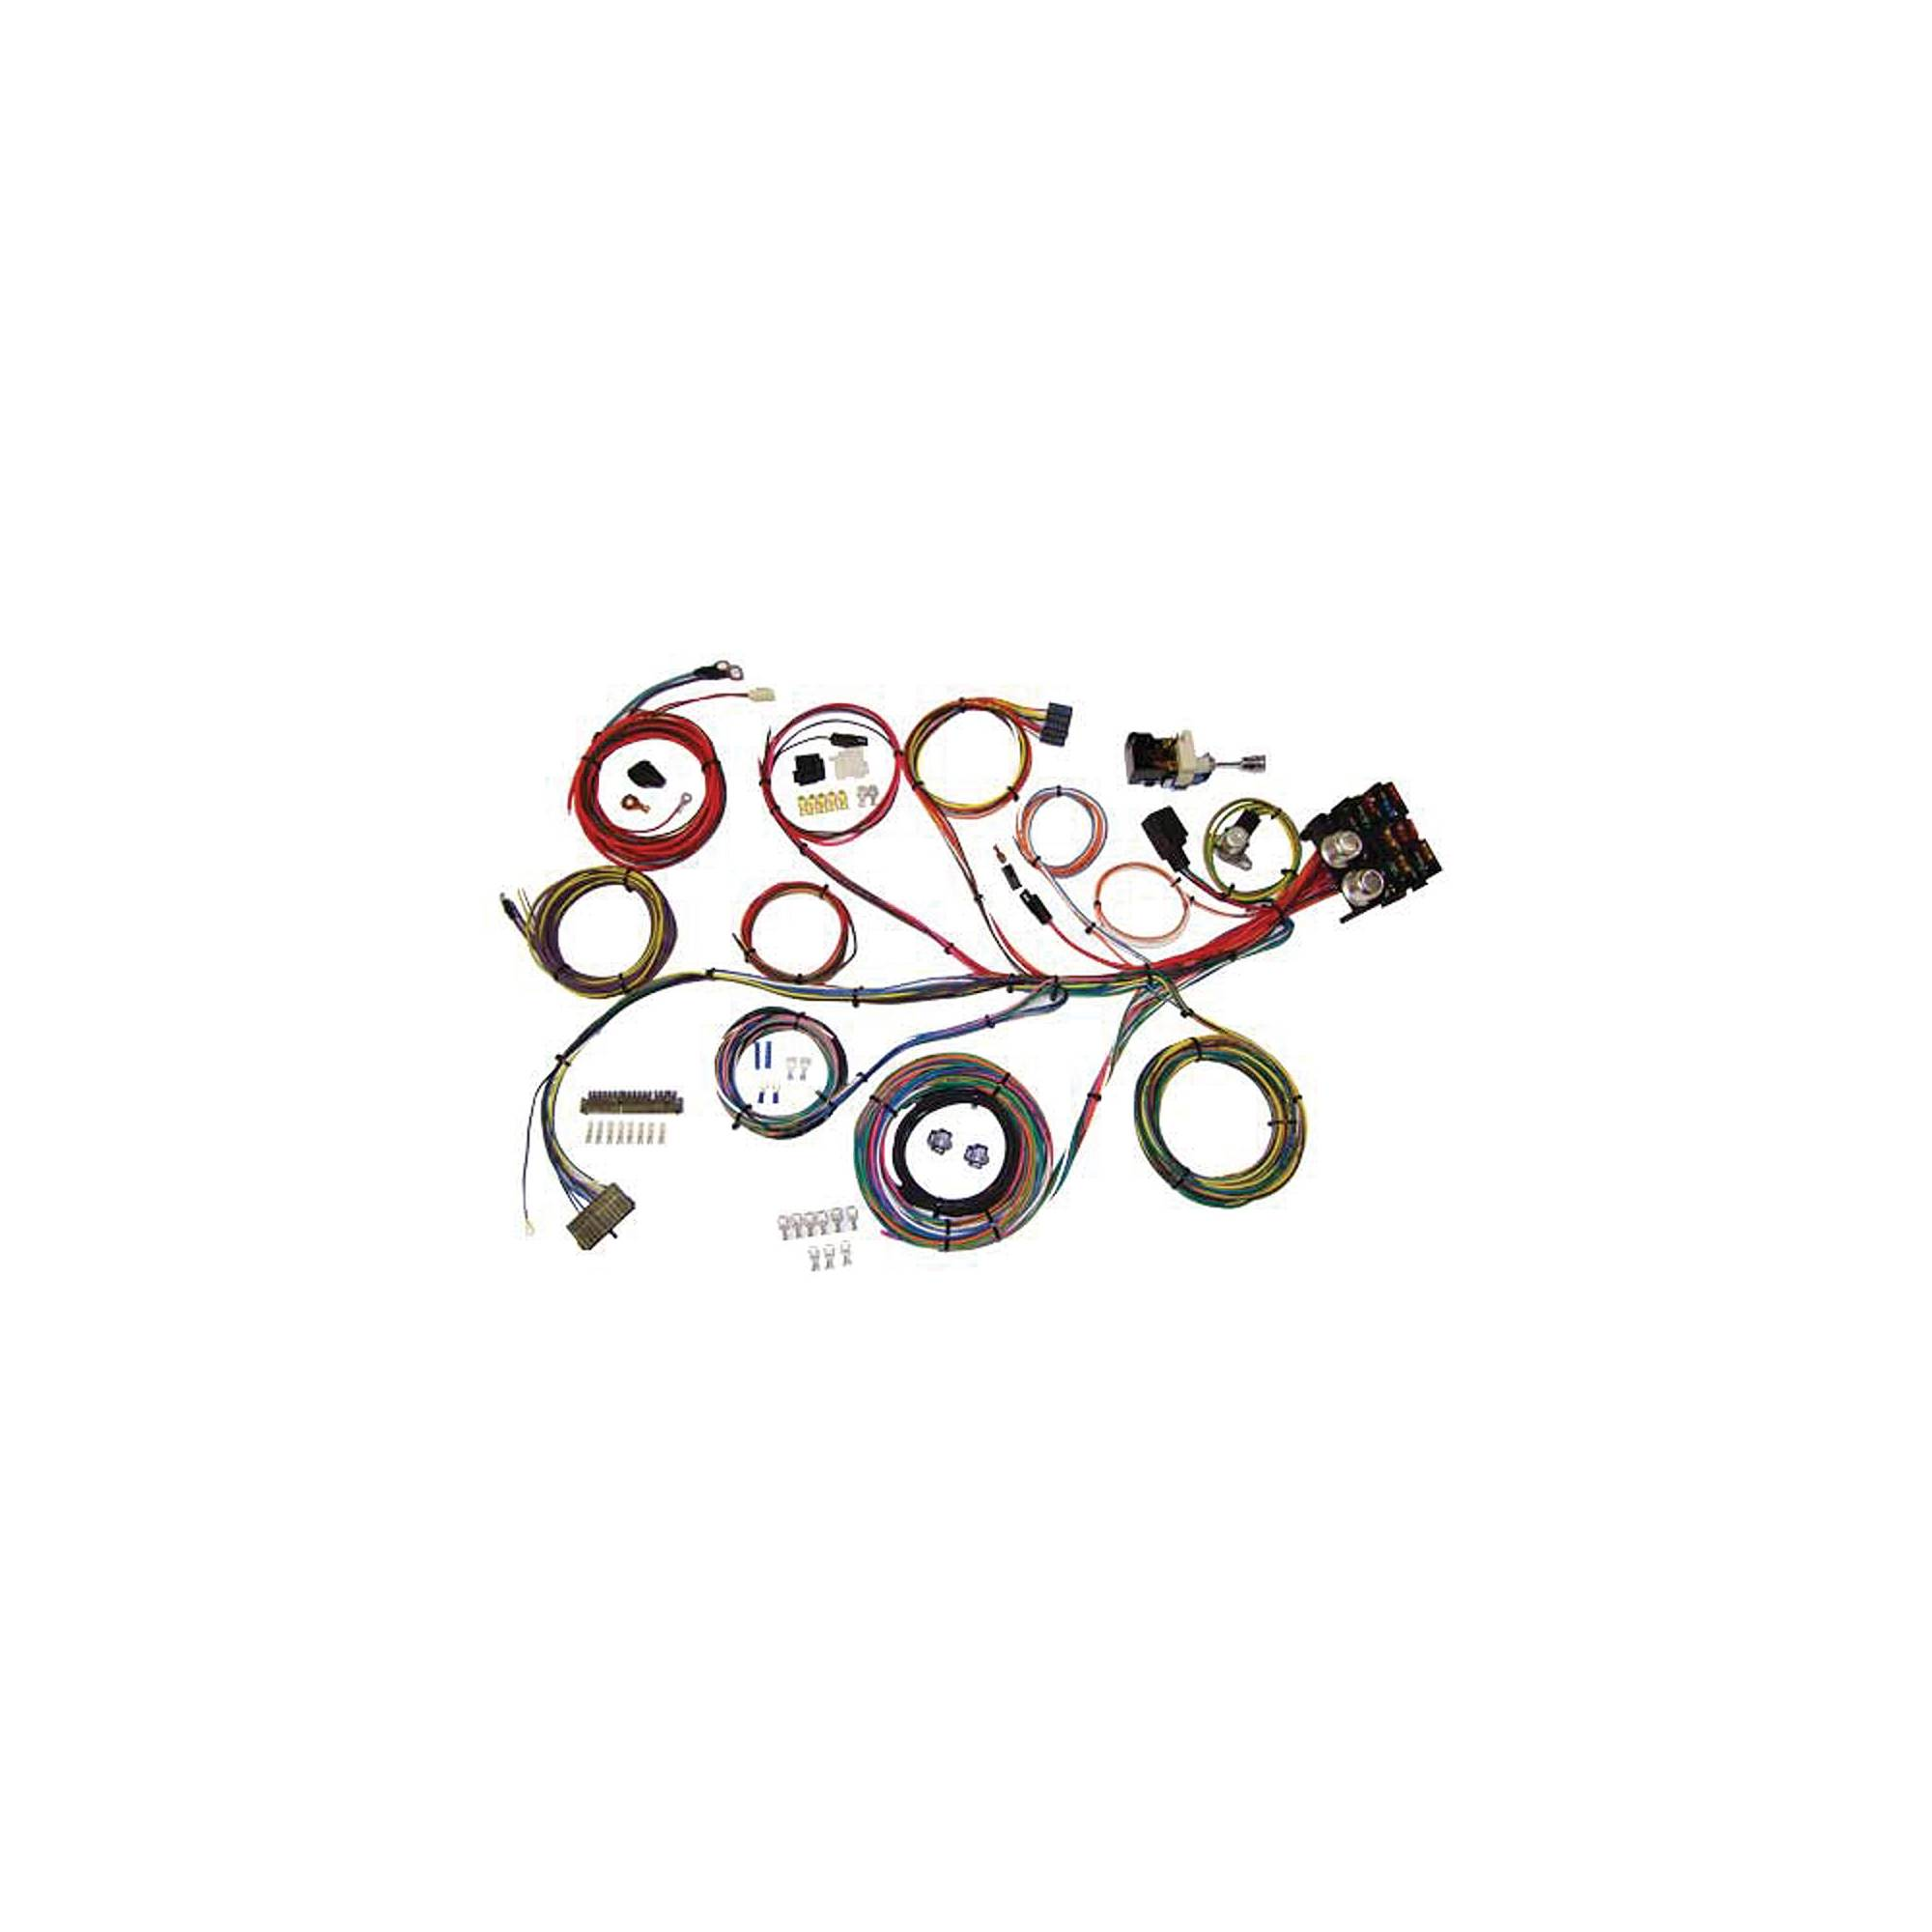 Eckler S Premier Products Chevy Wiring Harness